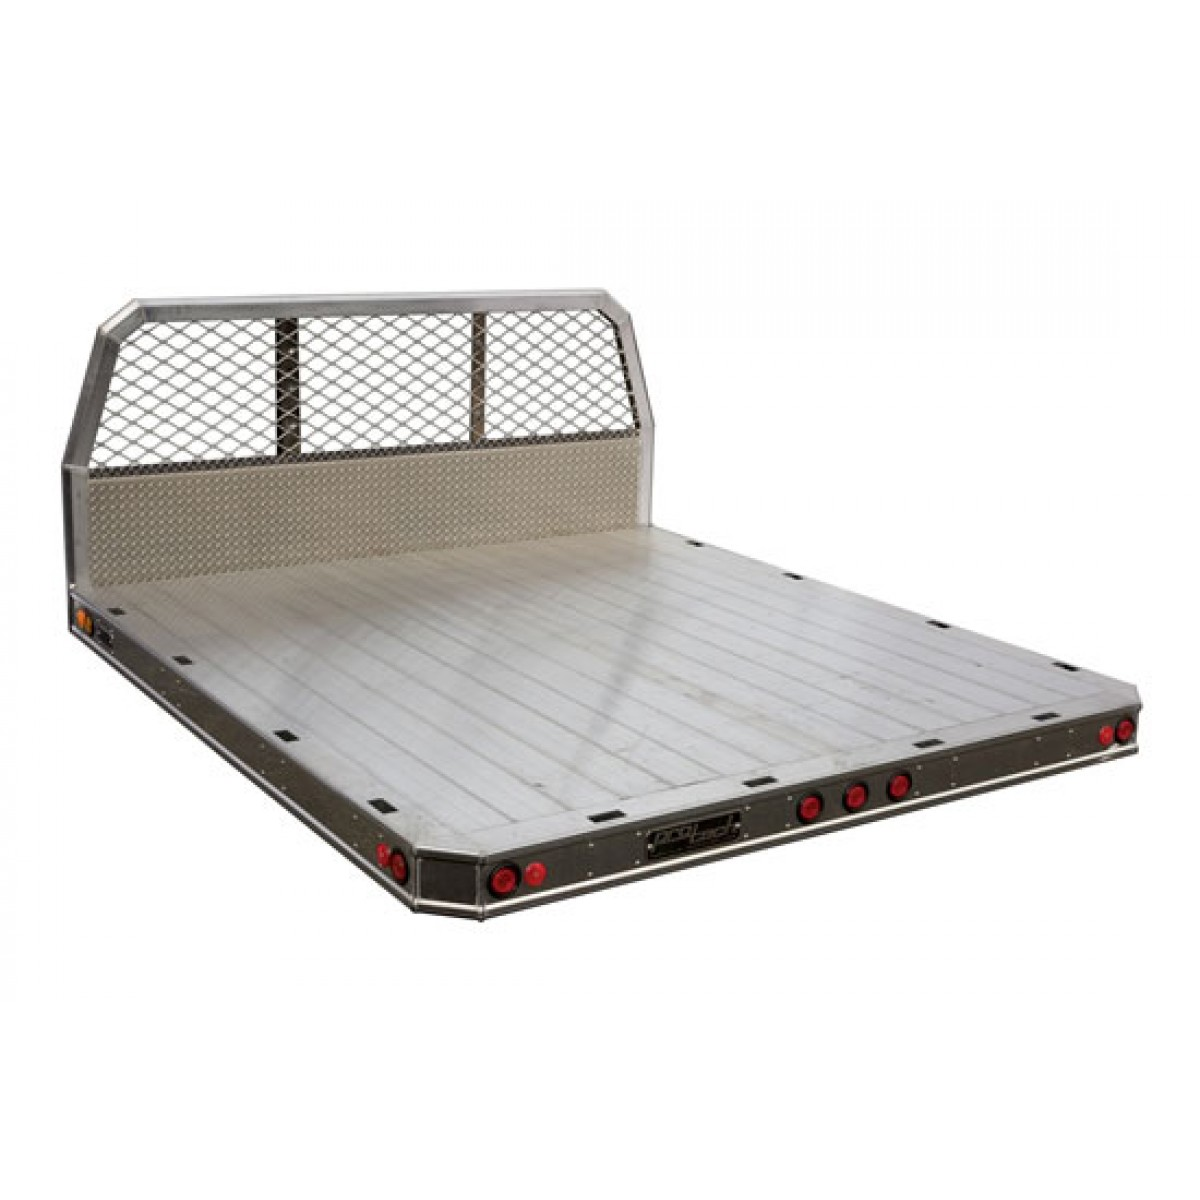 Pro tech flatbeds for Bed tech 3000